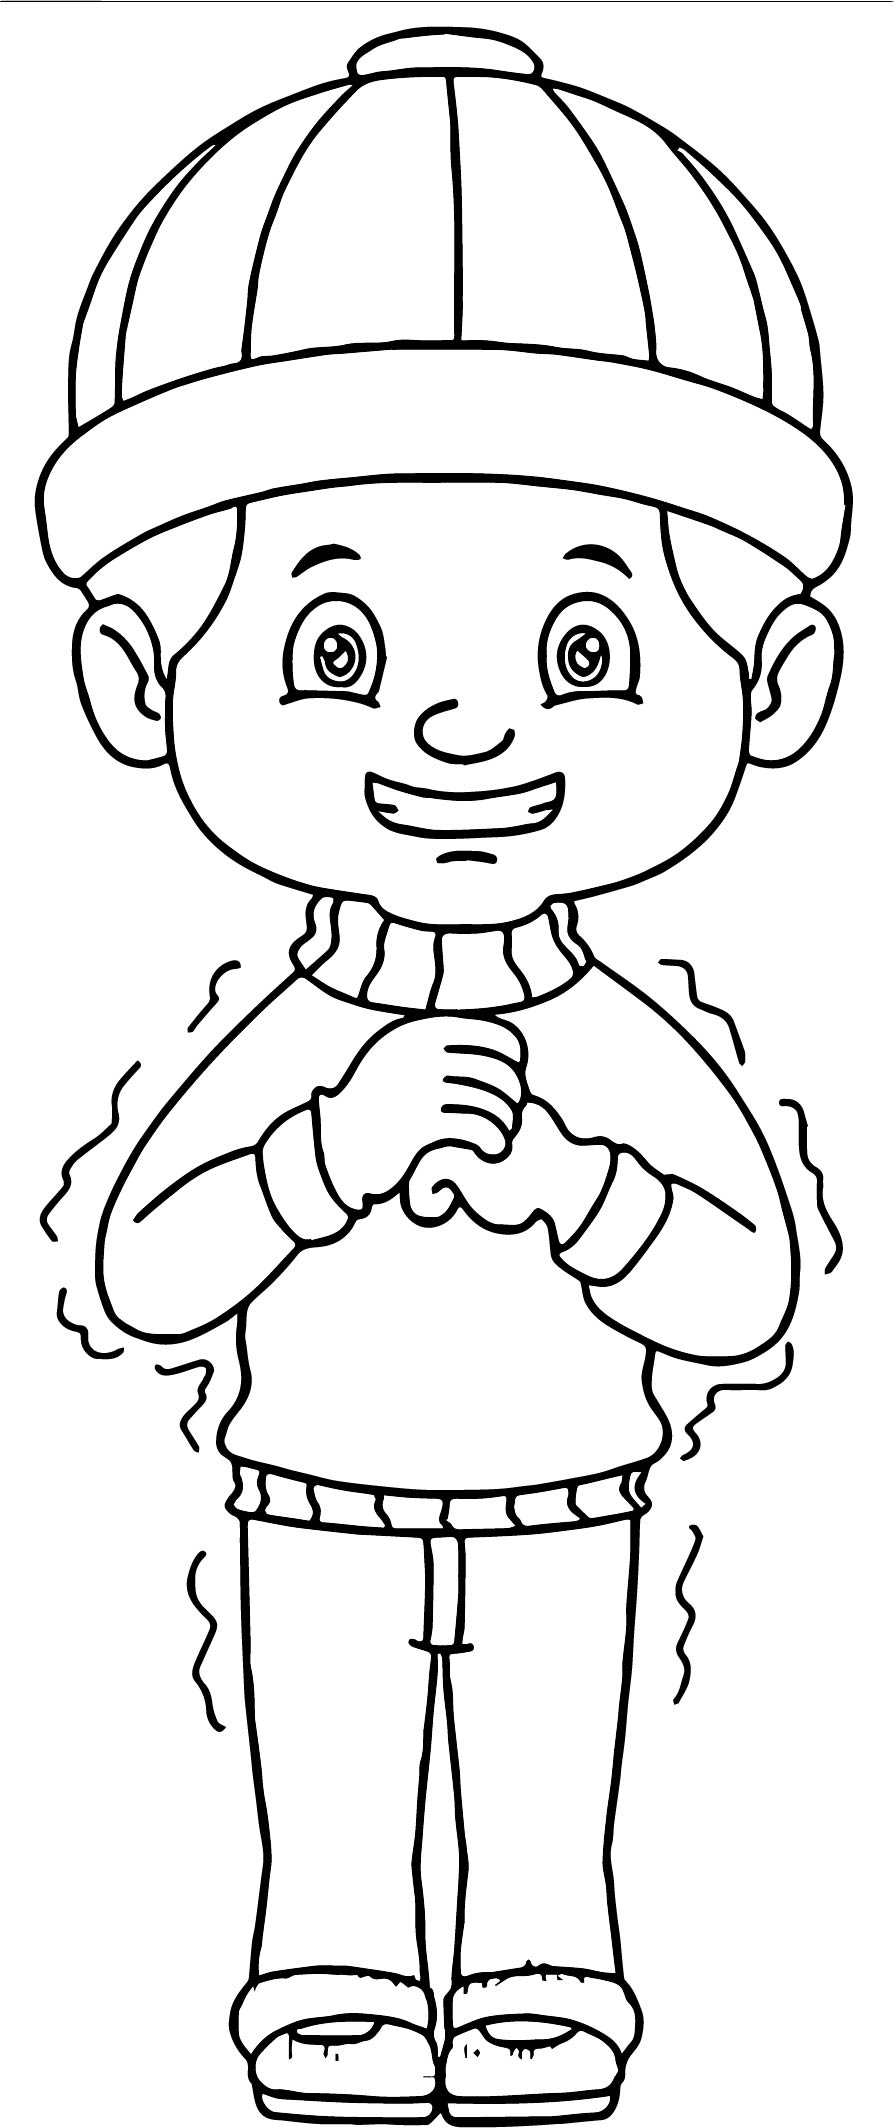 Boy Wearing Hat Gloves Shivering Winter Coloring Page